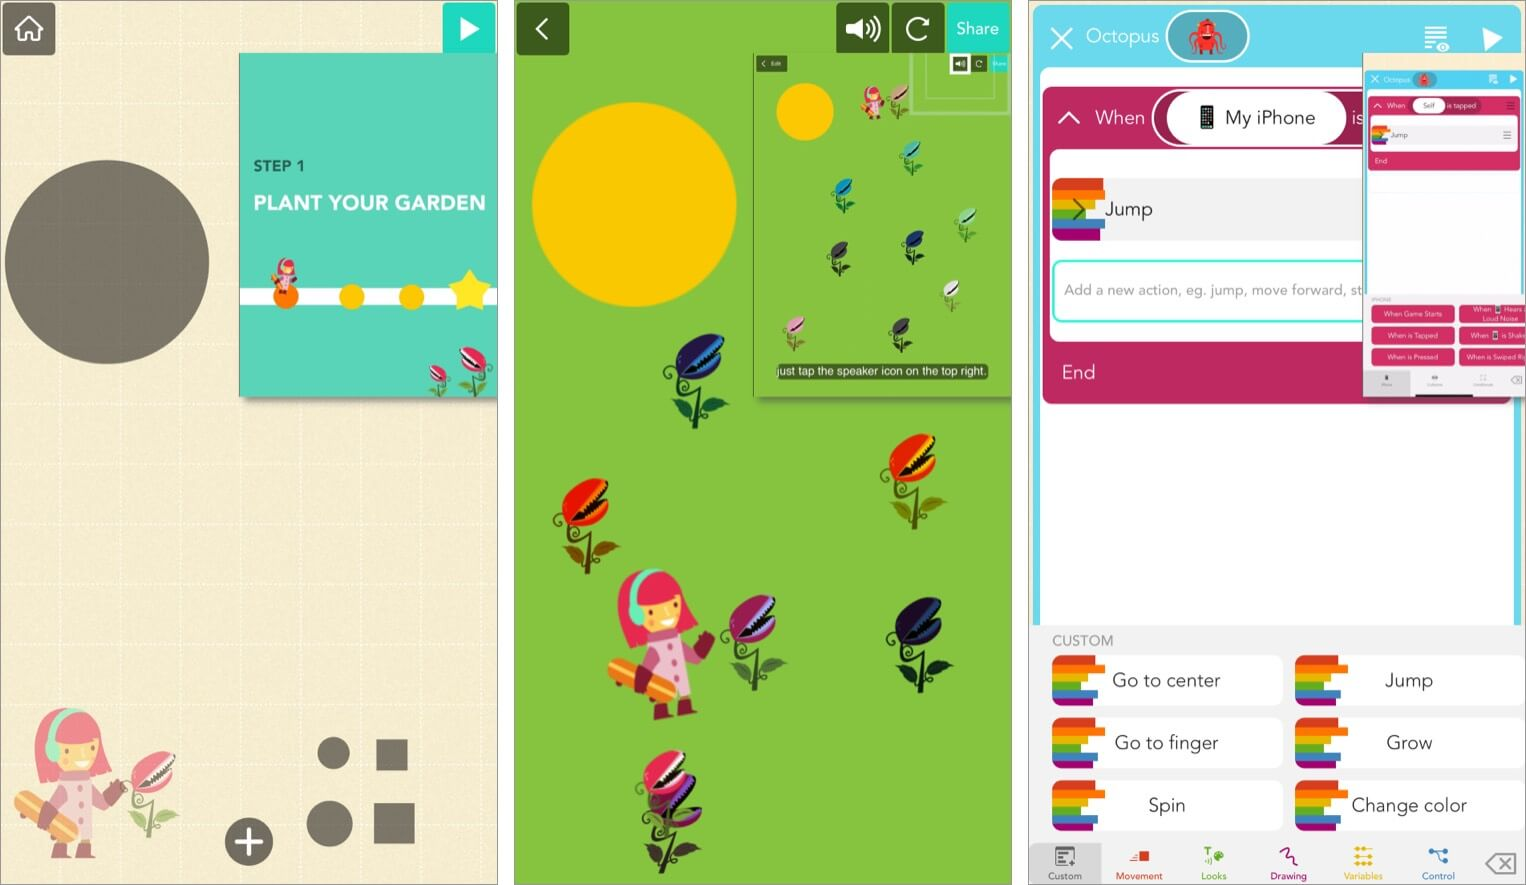 Hands-on learning concept in Hopscotch iPhone app